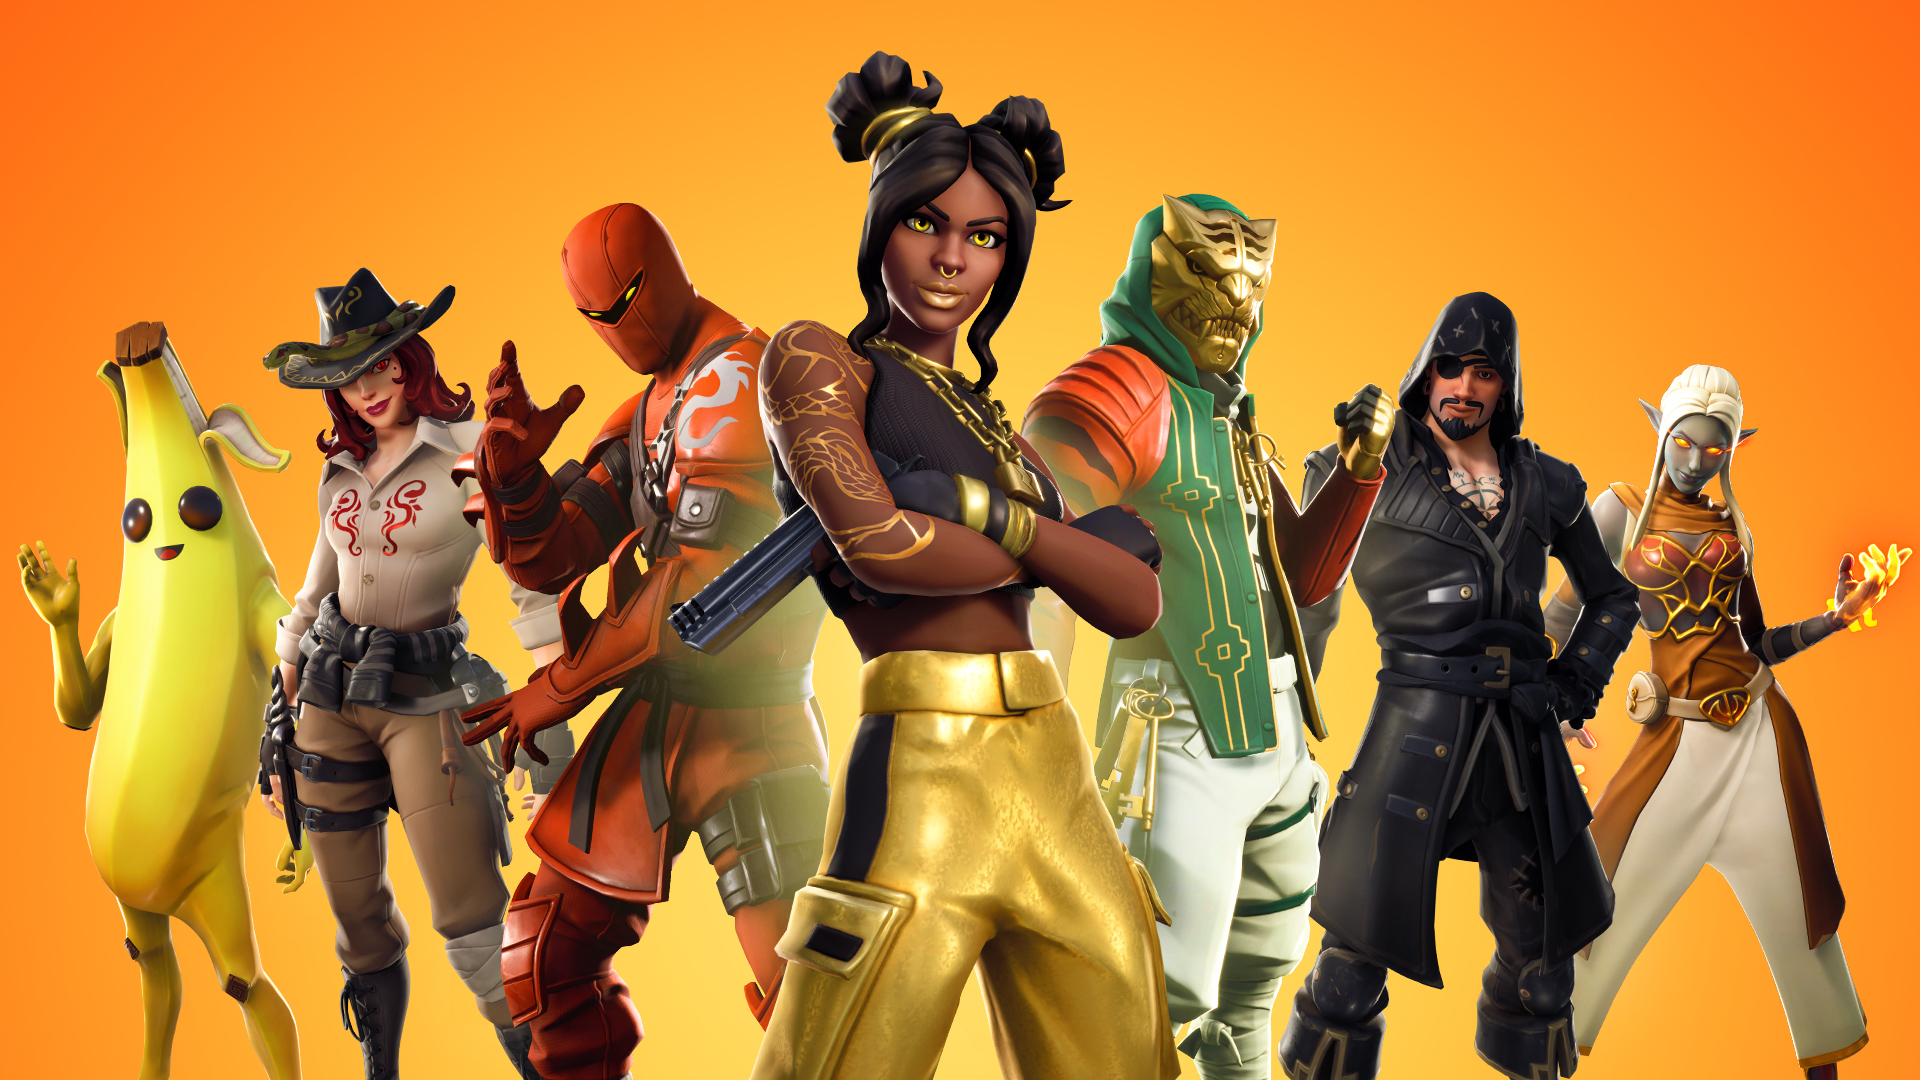 epic unveils new fortnite gauntlet solos and duos test event - fortnite arena point system duos